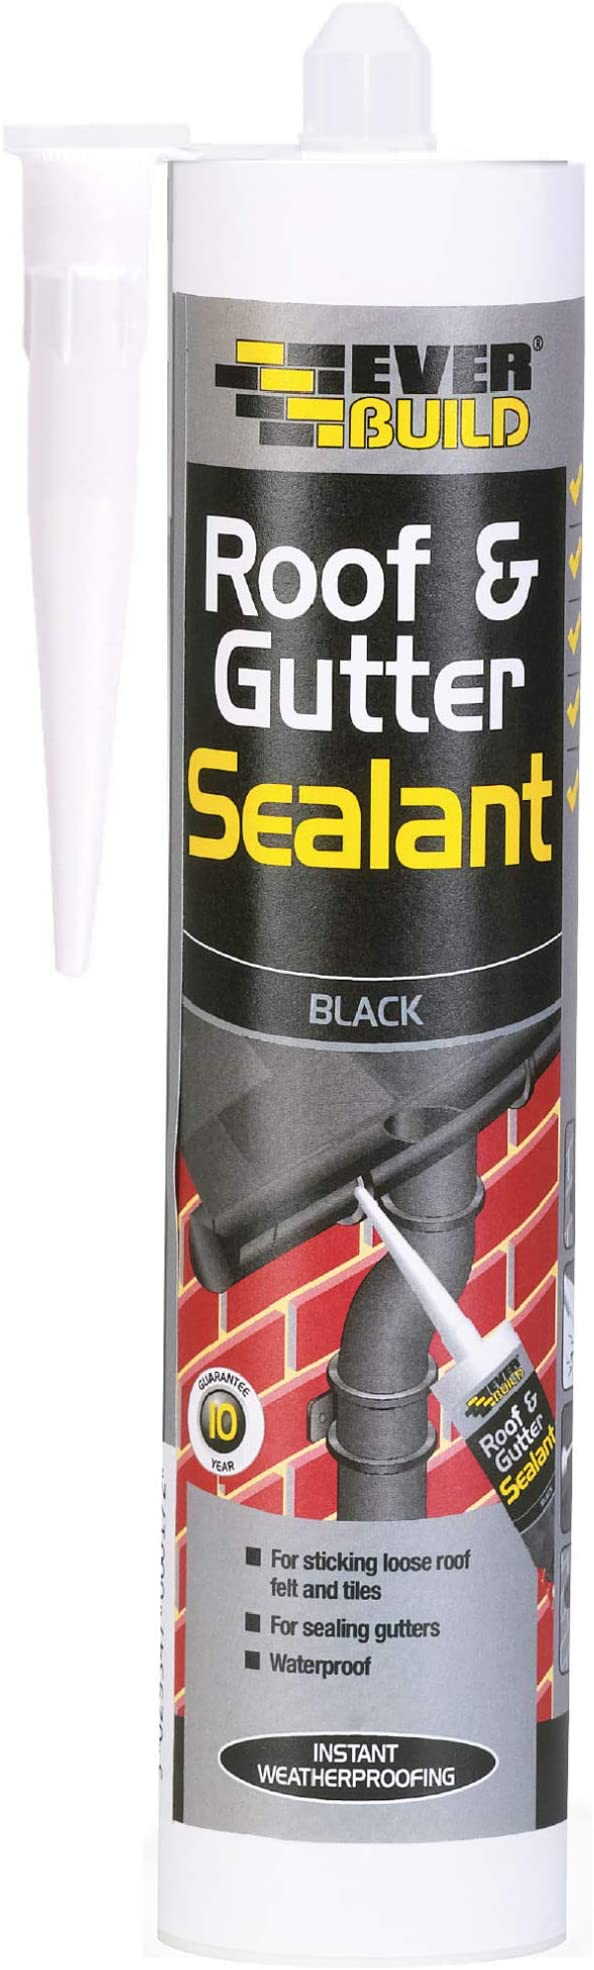 Everbuild Gutter sealant black